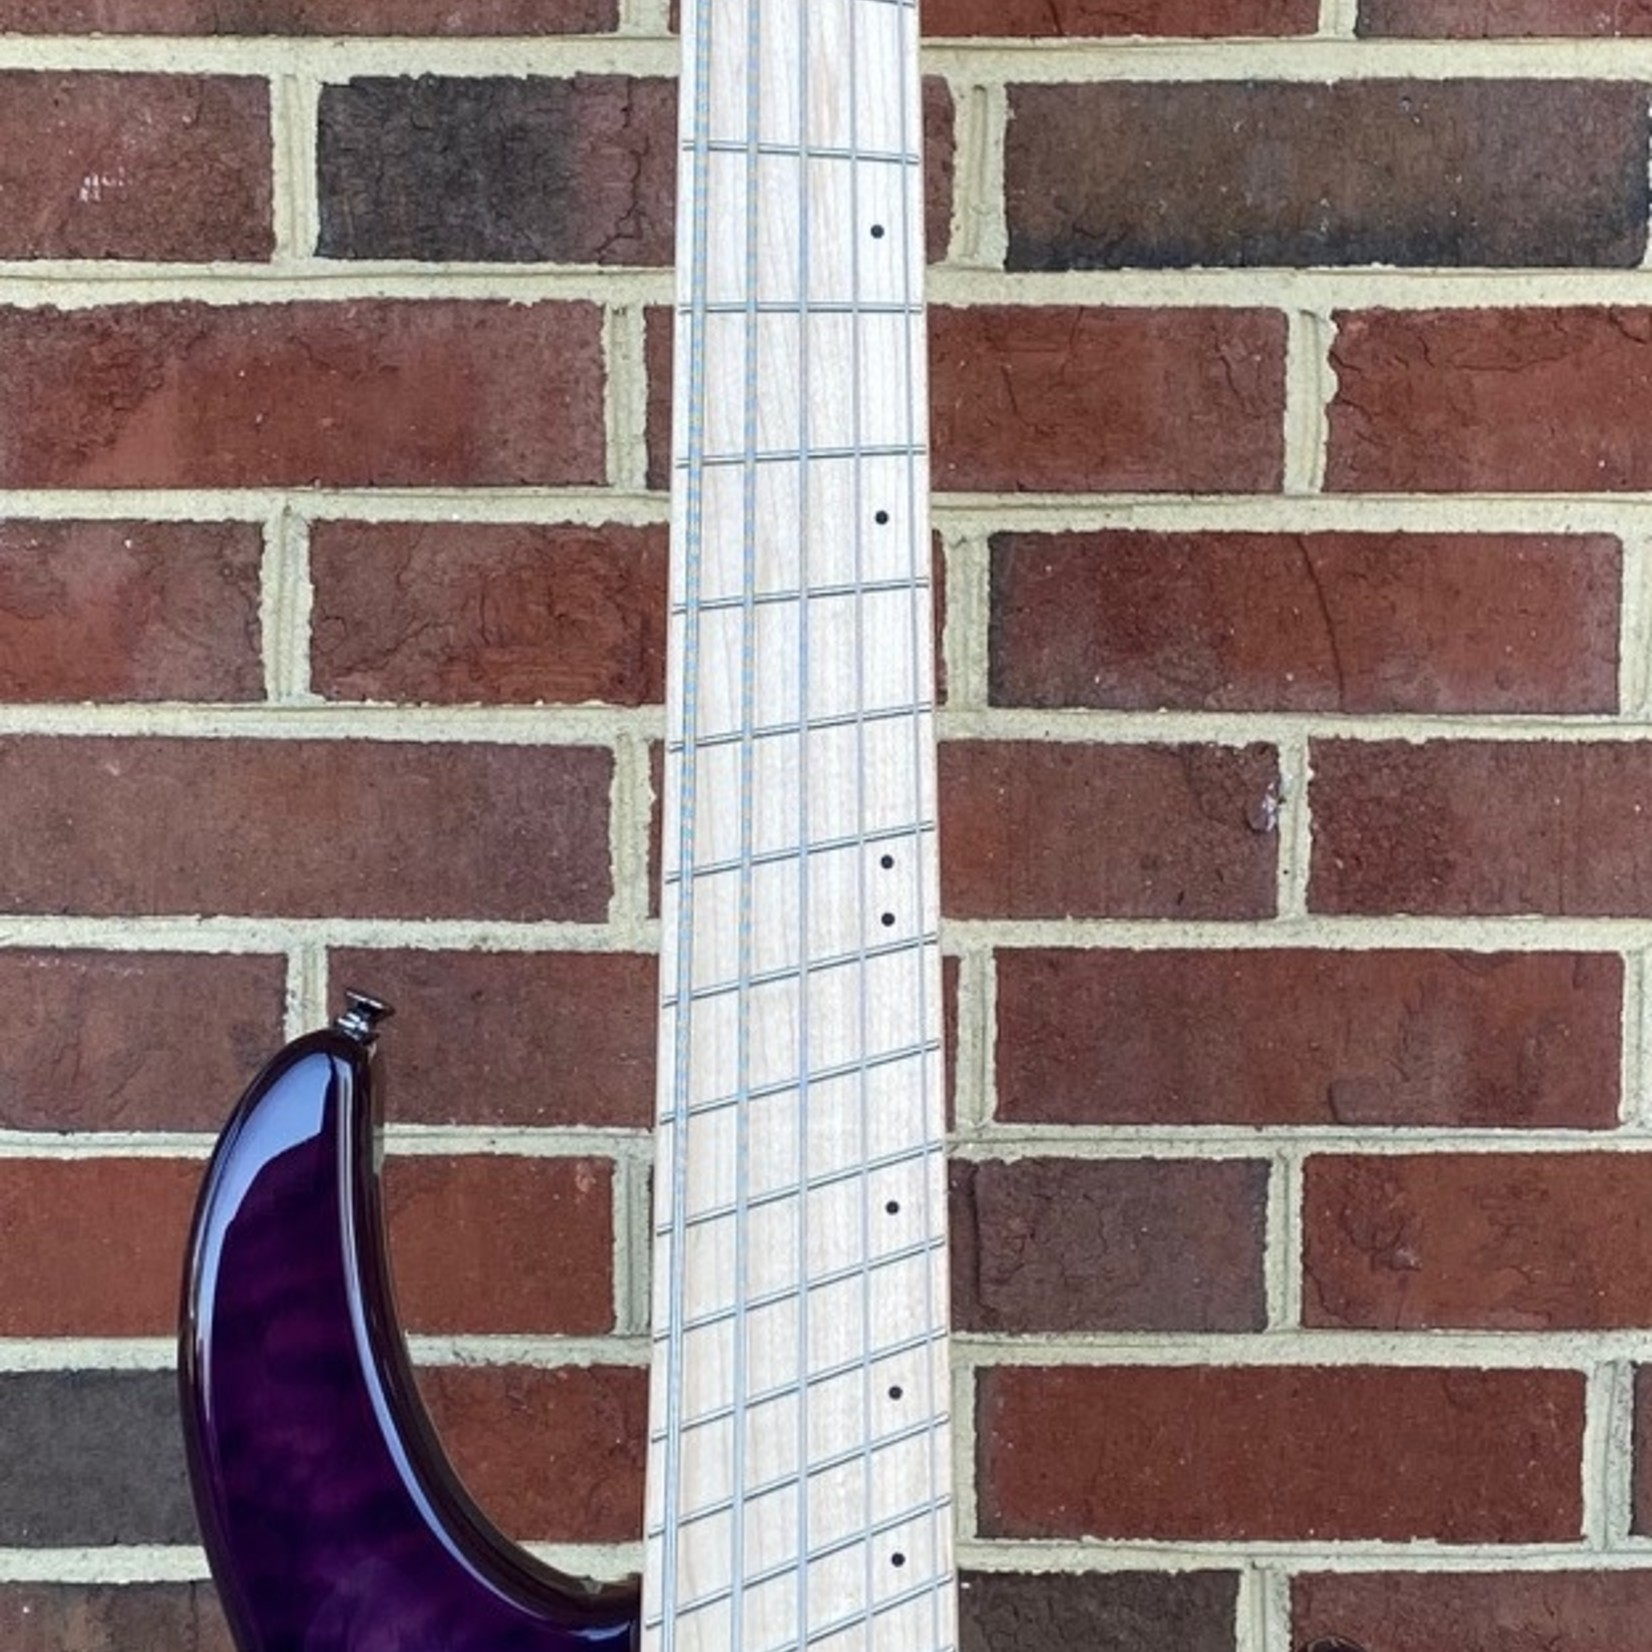 Dingwall Dingwall Combustion 5-String, 3x Pickups, Ultra Violet, Quilted Maple Top, Swamp Ash Body, Maple Fretboard, Dingwall Gig Bag, SN# 7014